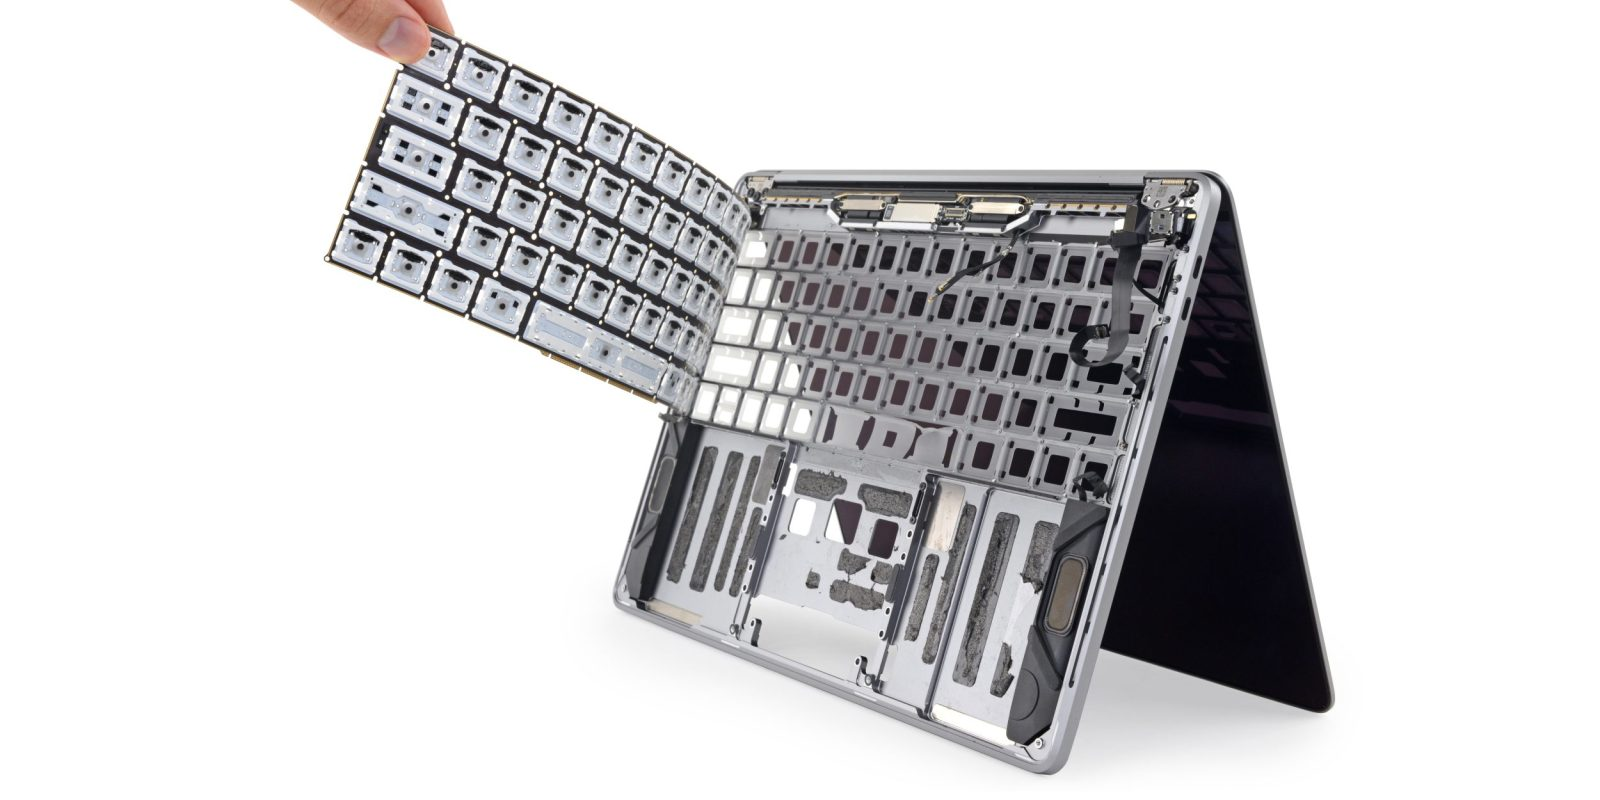 Selling your MacBook? Here's how to repair the butterfly keyboard for free and get more money